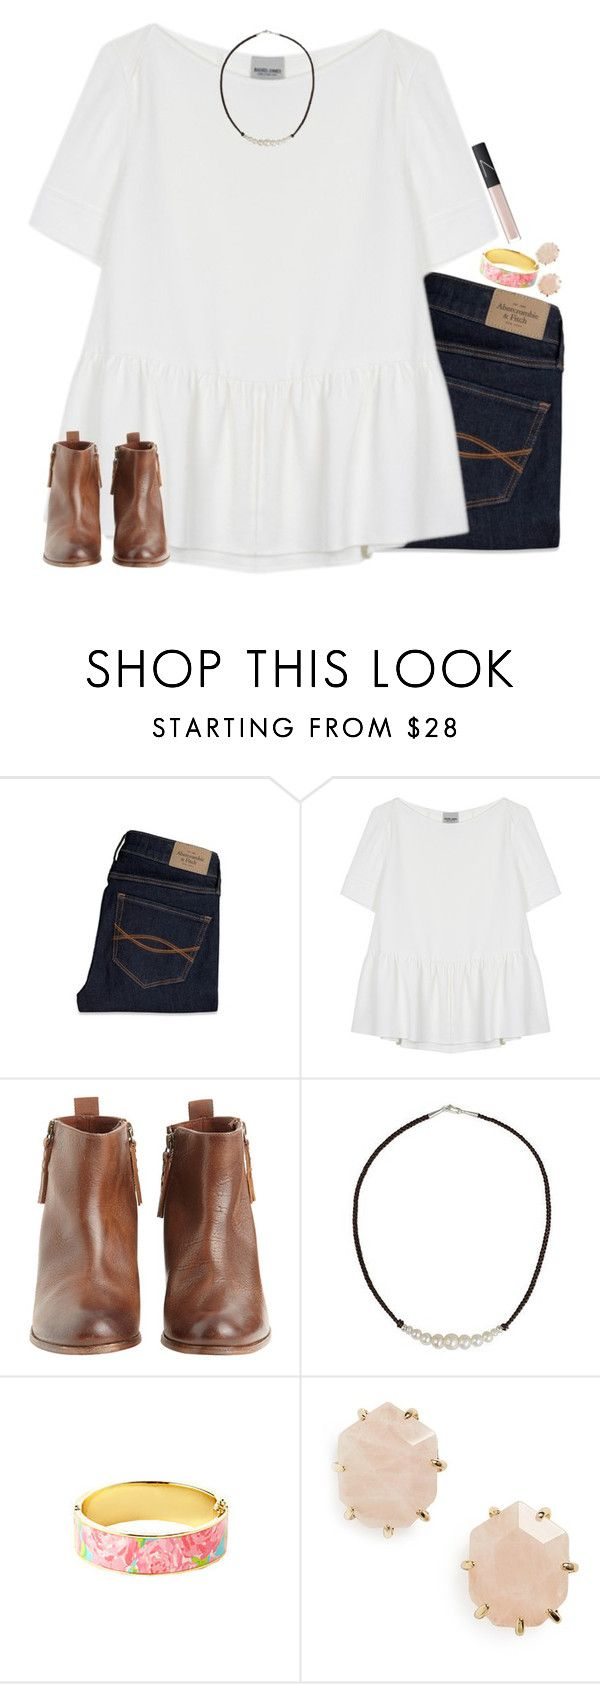 """Simplicity."" by maliaackermann ❤ liked on Polyvore featuring Abercrombie & Fitch, Rachel Comey, Hoss Intropia, NOVICA, Kendra Scott and NARS Cosmetics"